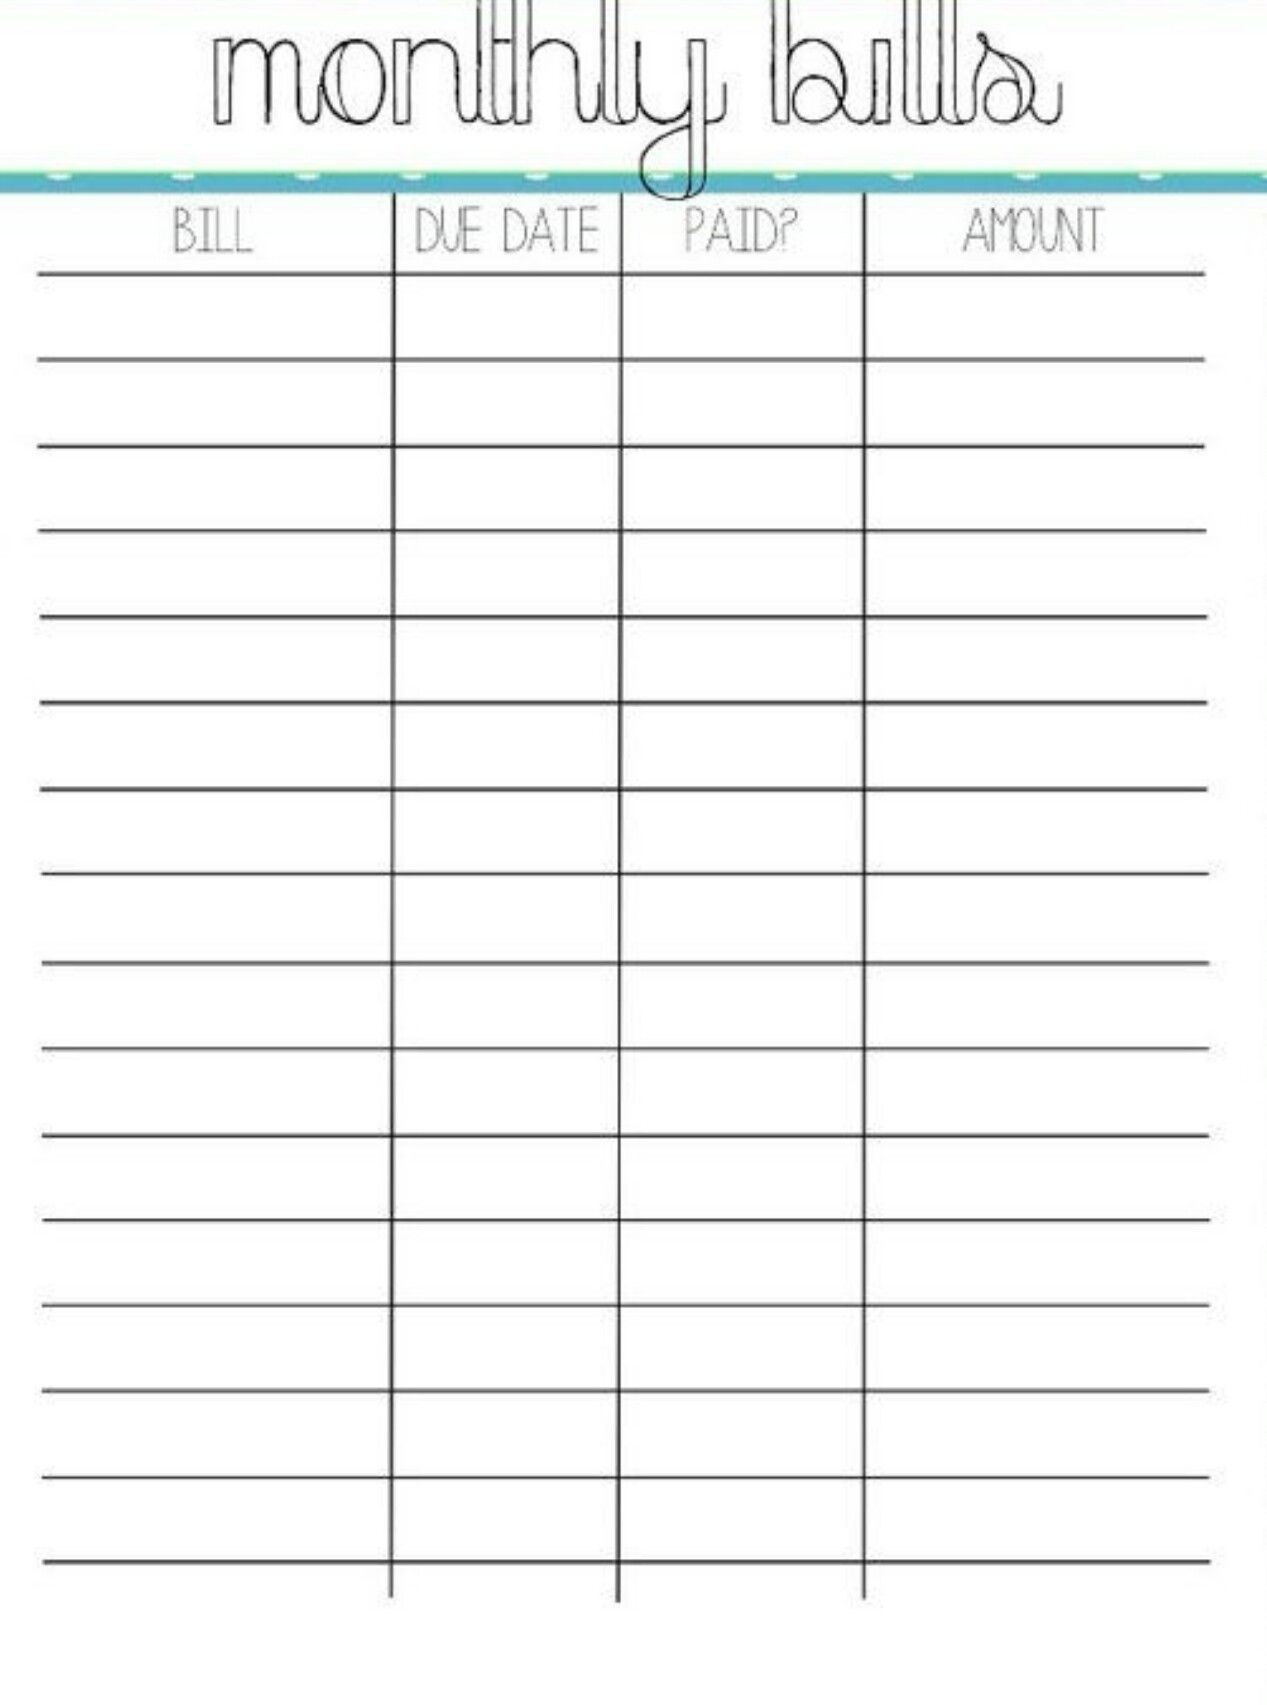 Pin By Crystal On Bills | Organizing Monthly Bills, Bills intended for Free Printable Monthly Bill Payment Log